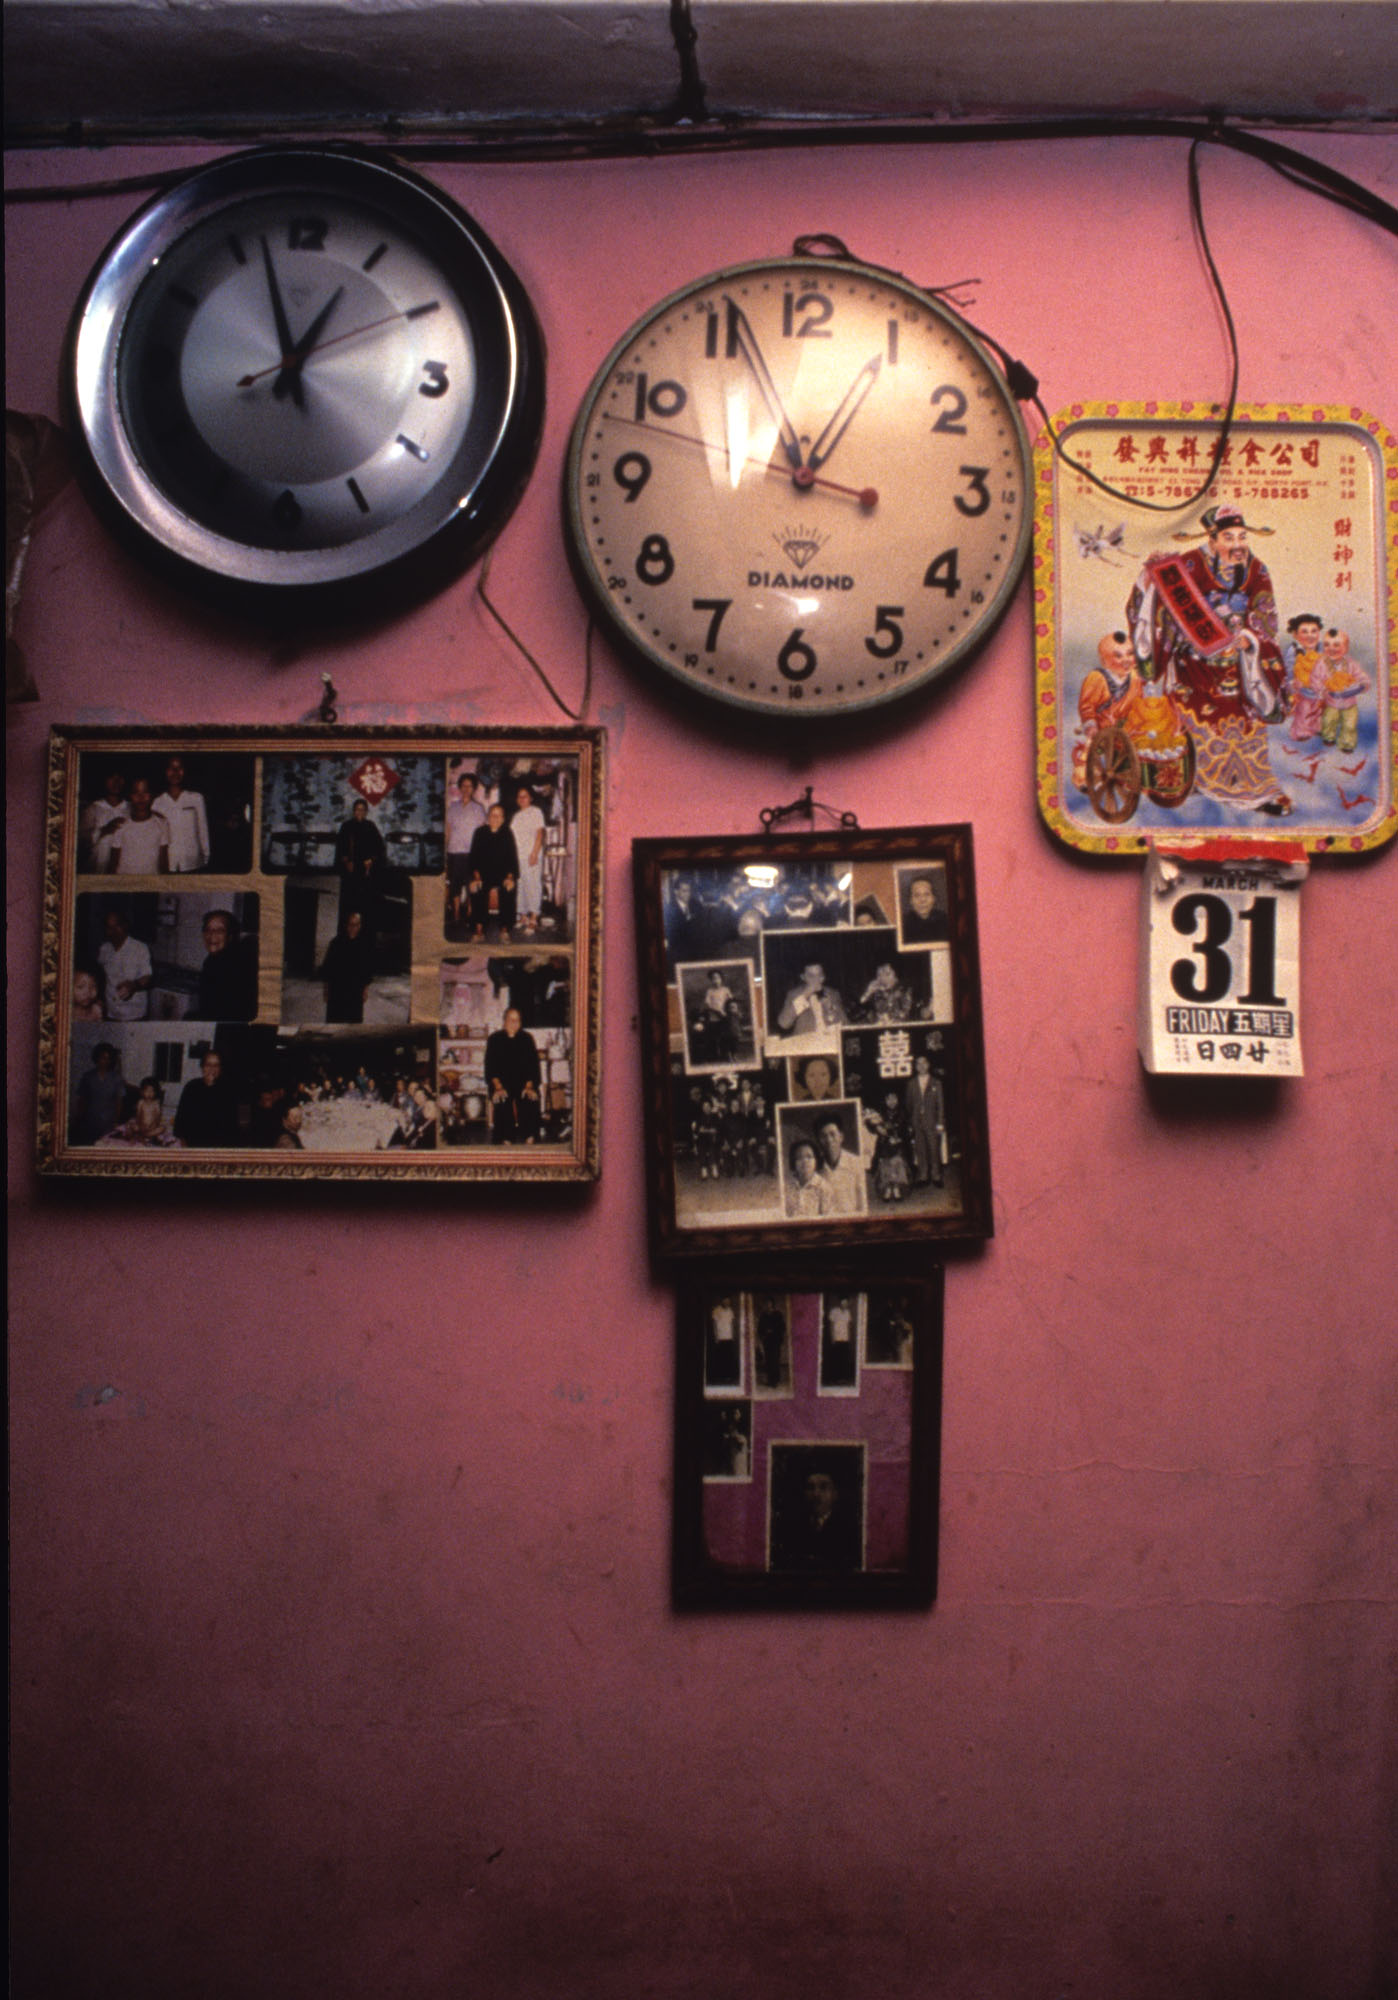 Kowloon Walled City Apartment Interior, 1989